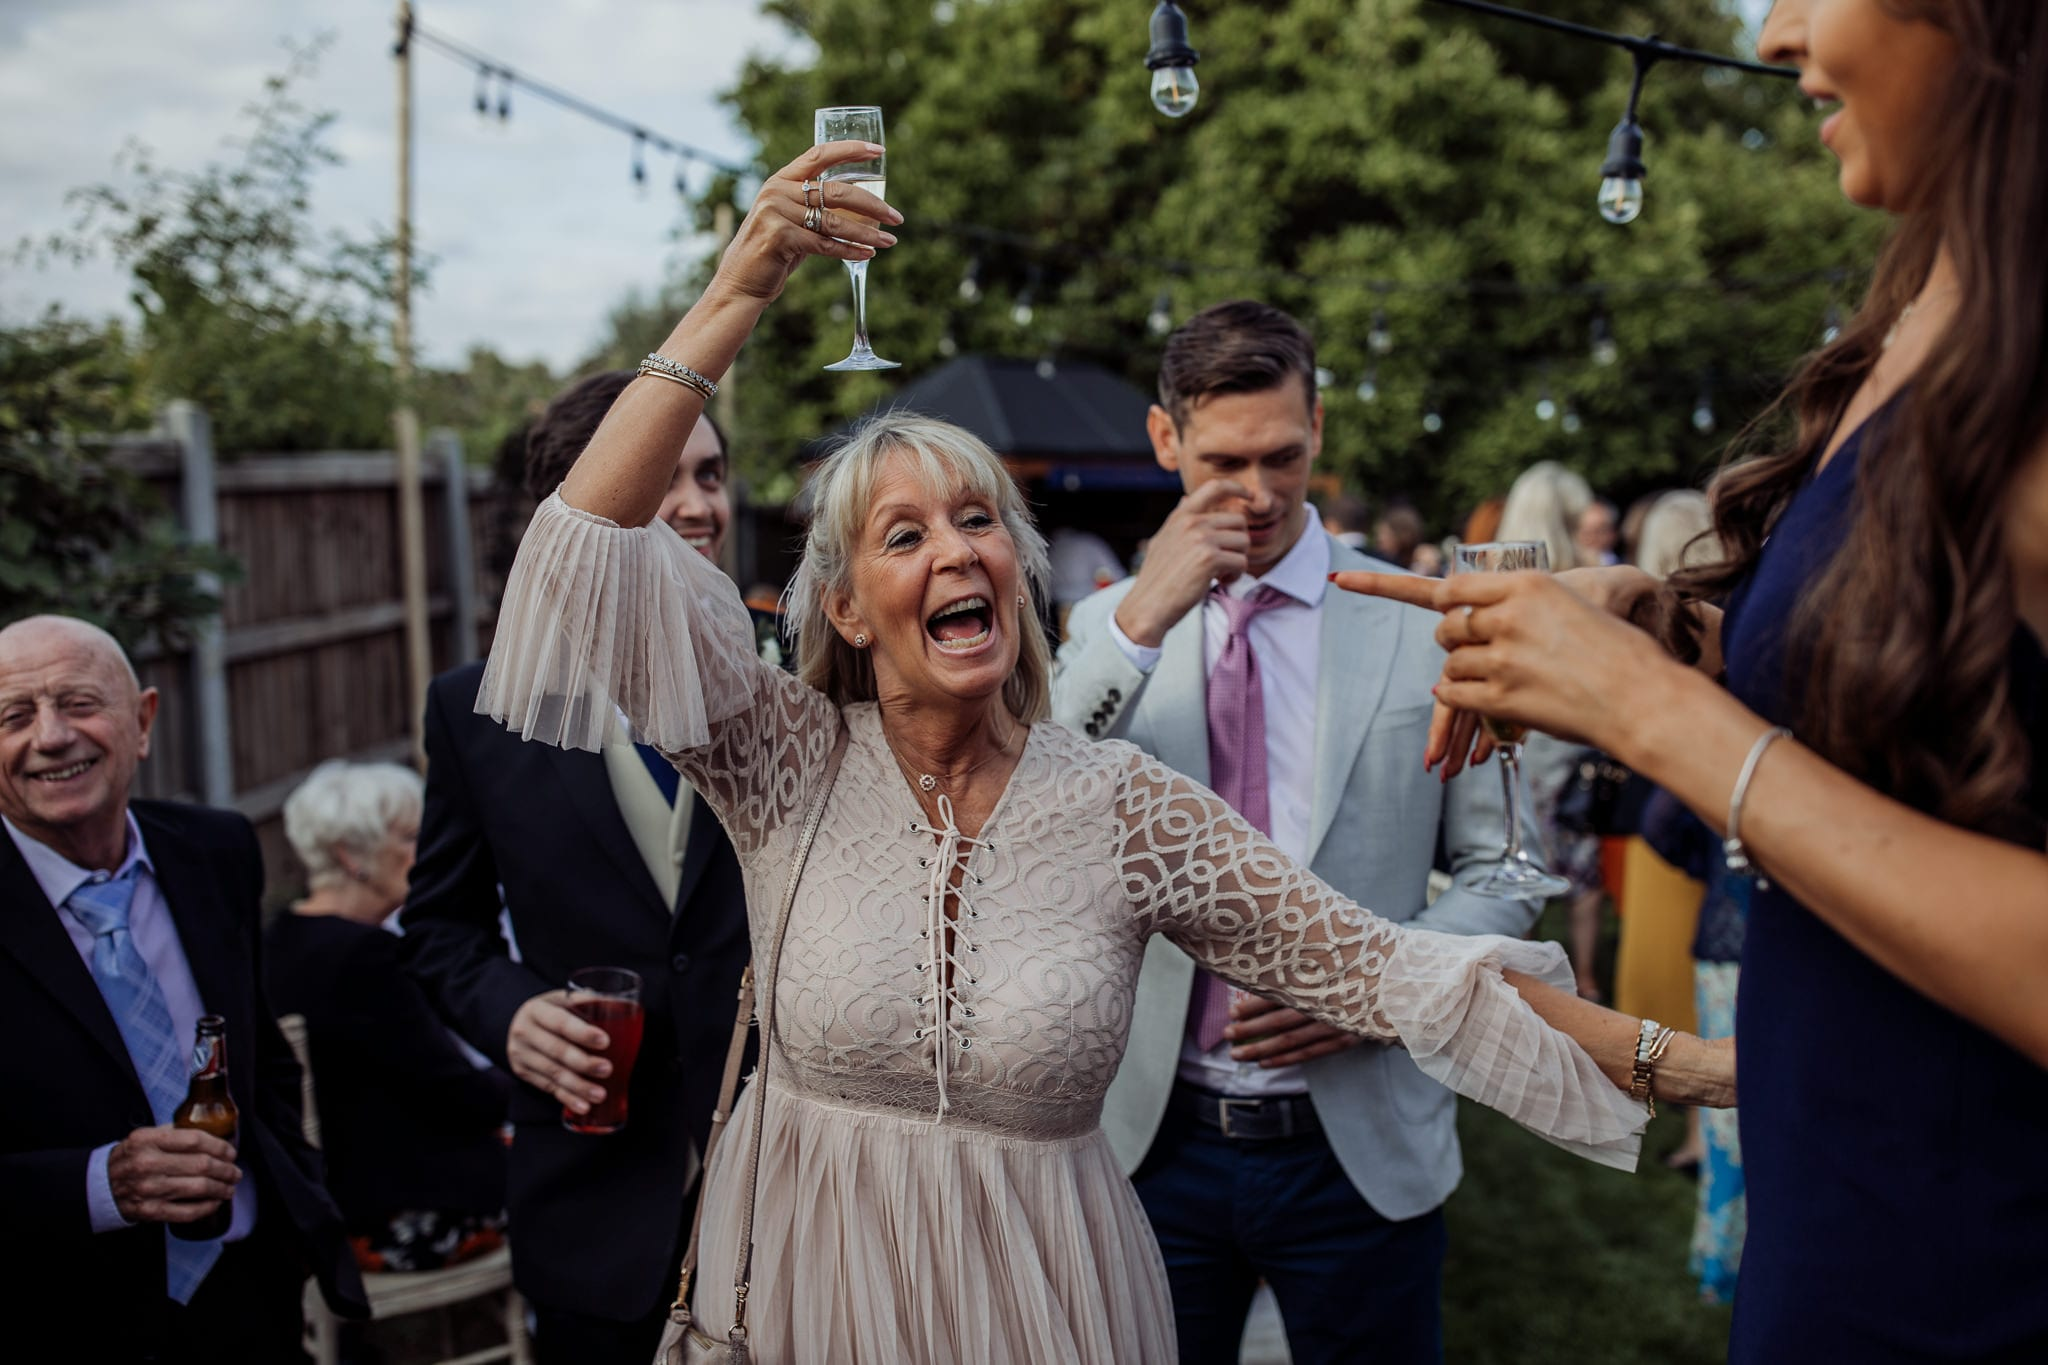 lady cheering with champagne glass at an Essex back garden wedding